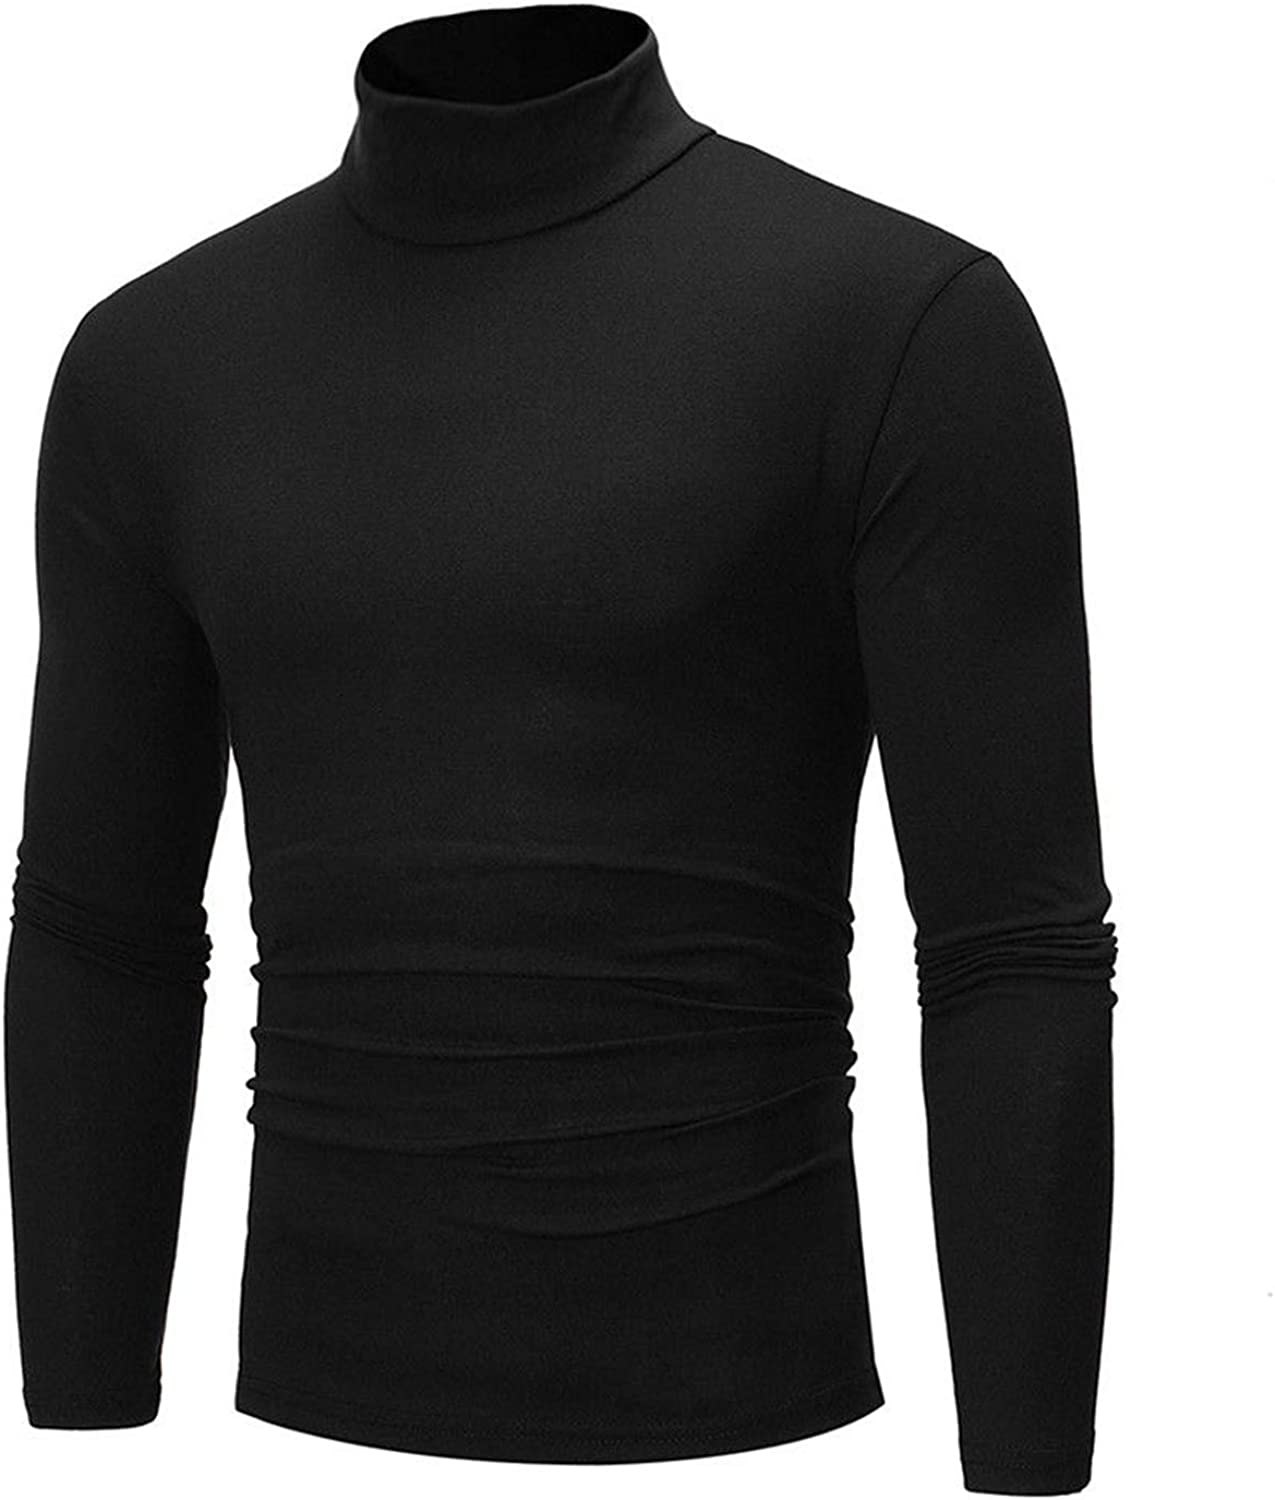 CREAMprice Mens Turtleneck Long Sleeve Shirt Slim Fit Soft Cotton Pullover